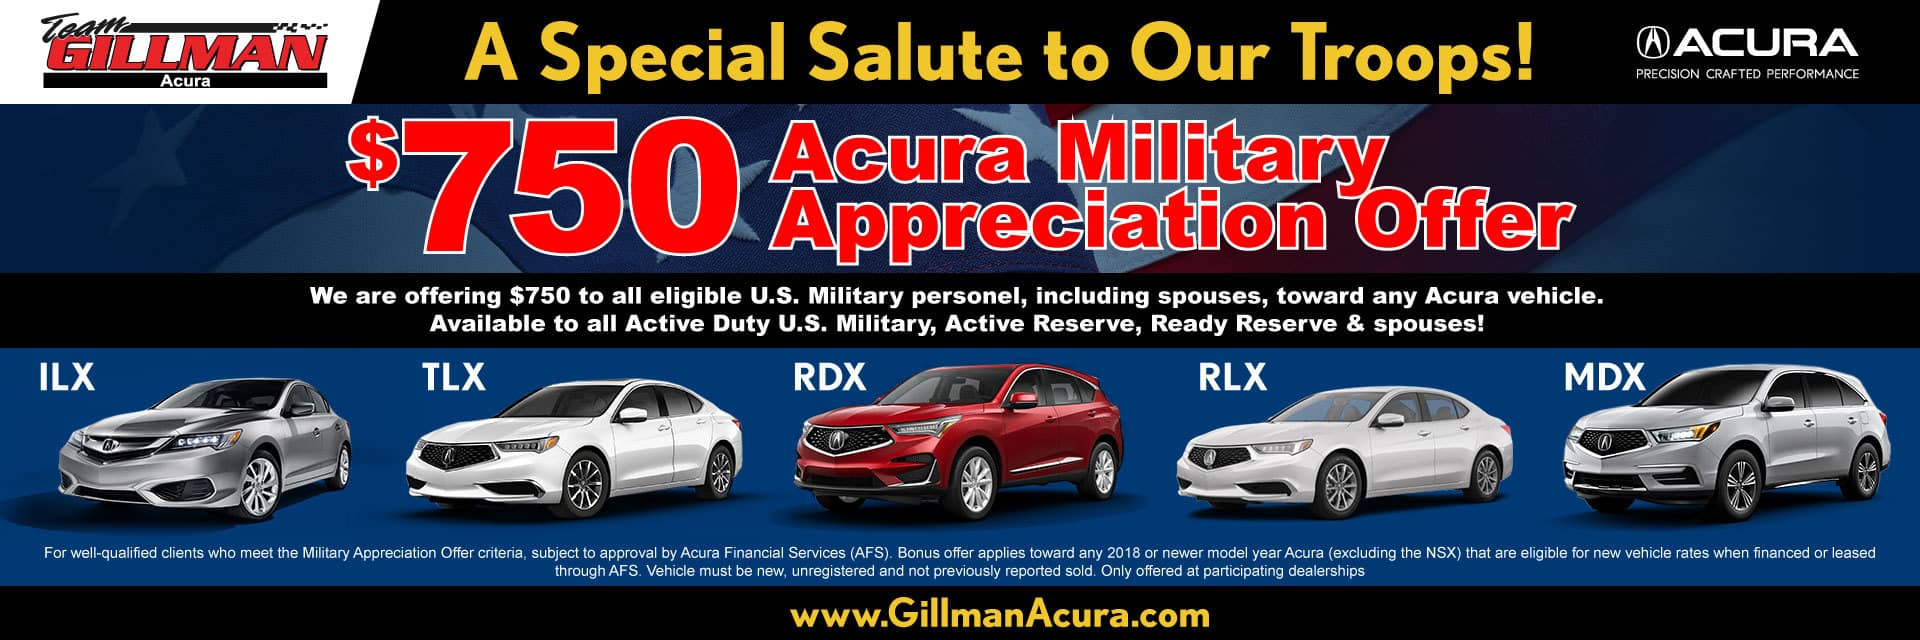 acura-military-appreciation-offer